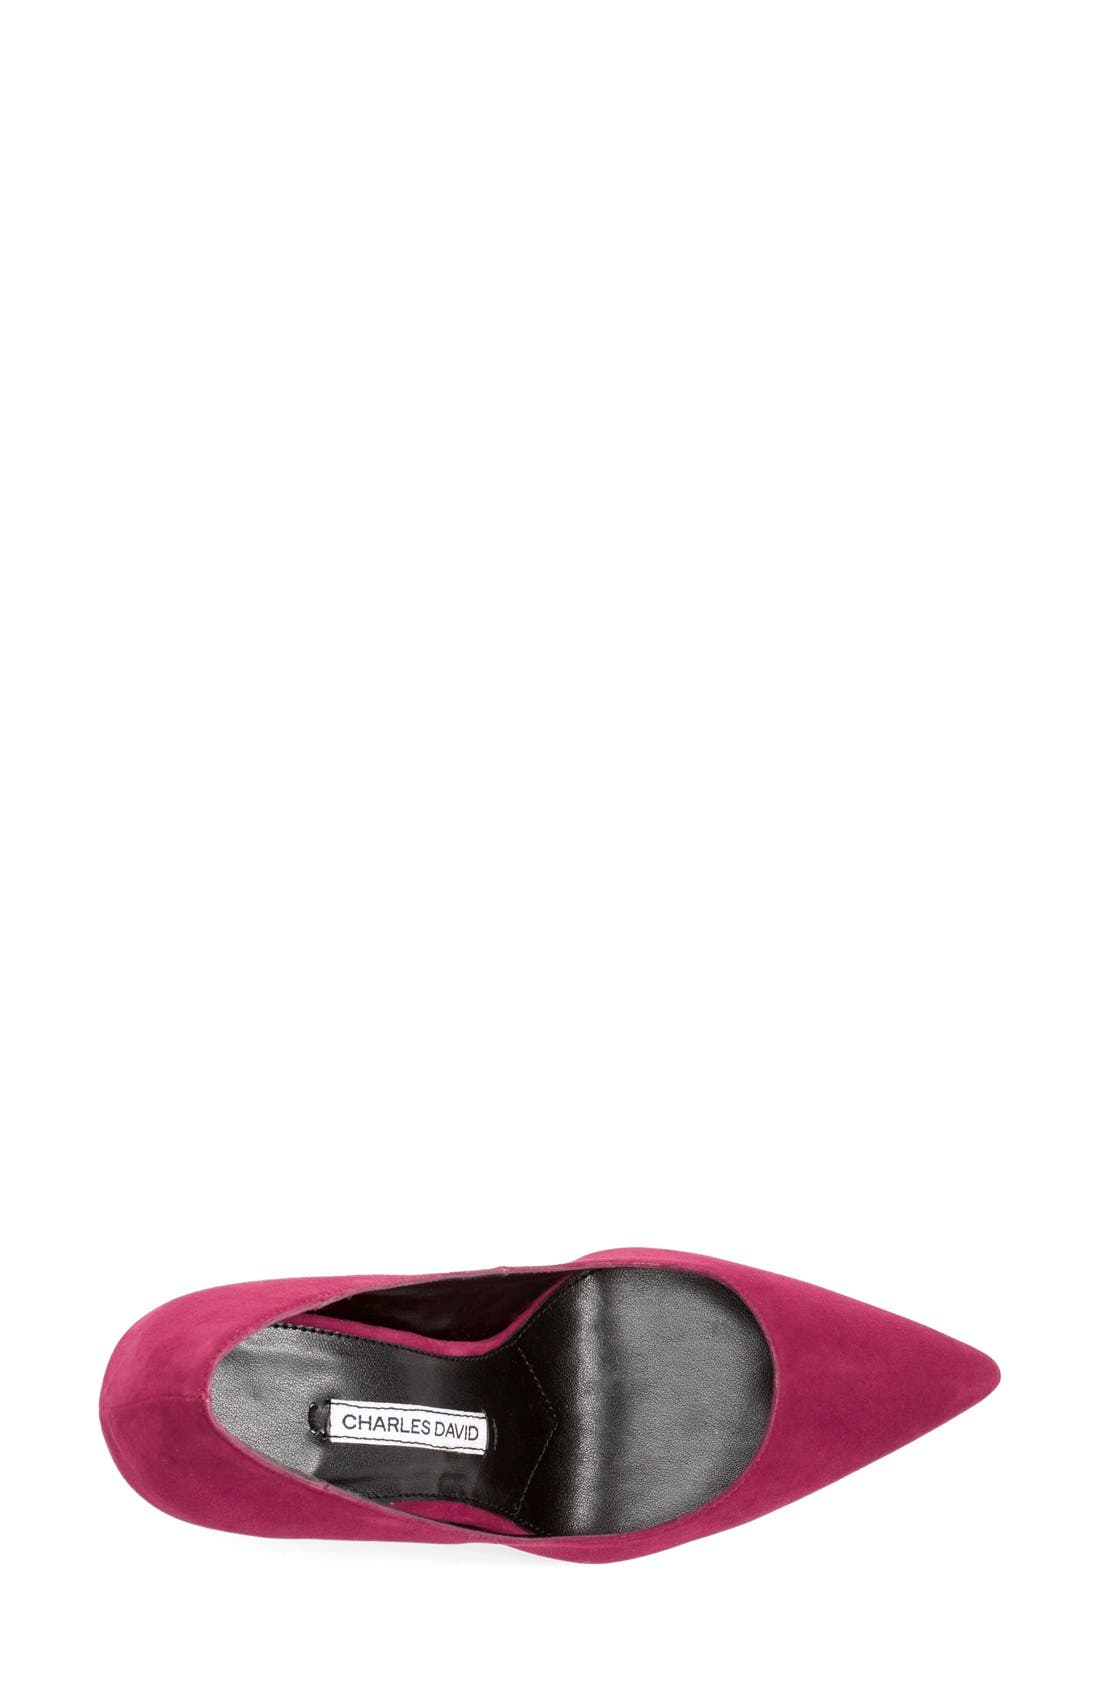 'Caterina' Pointy Toe Pump,                             Alternate thumbnail 45, color,